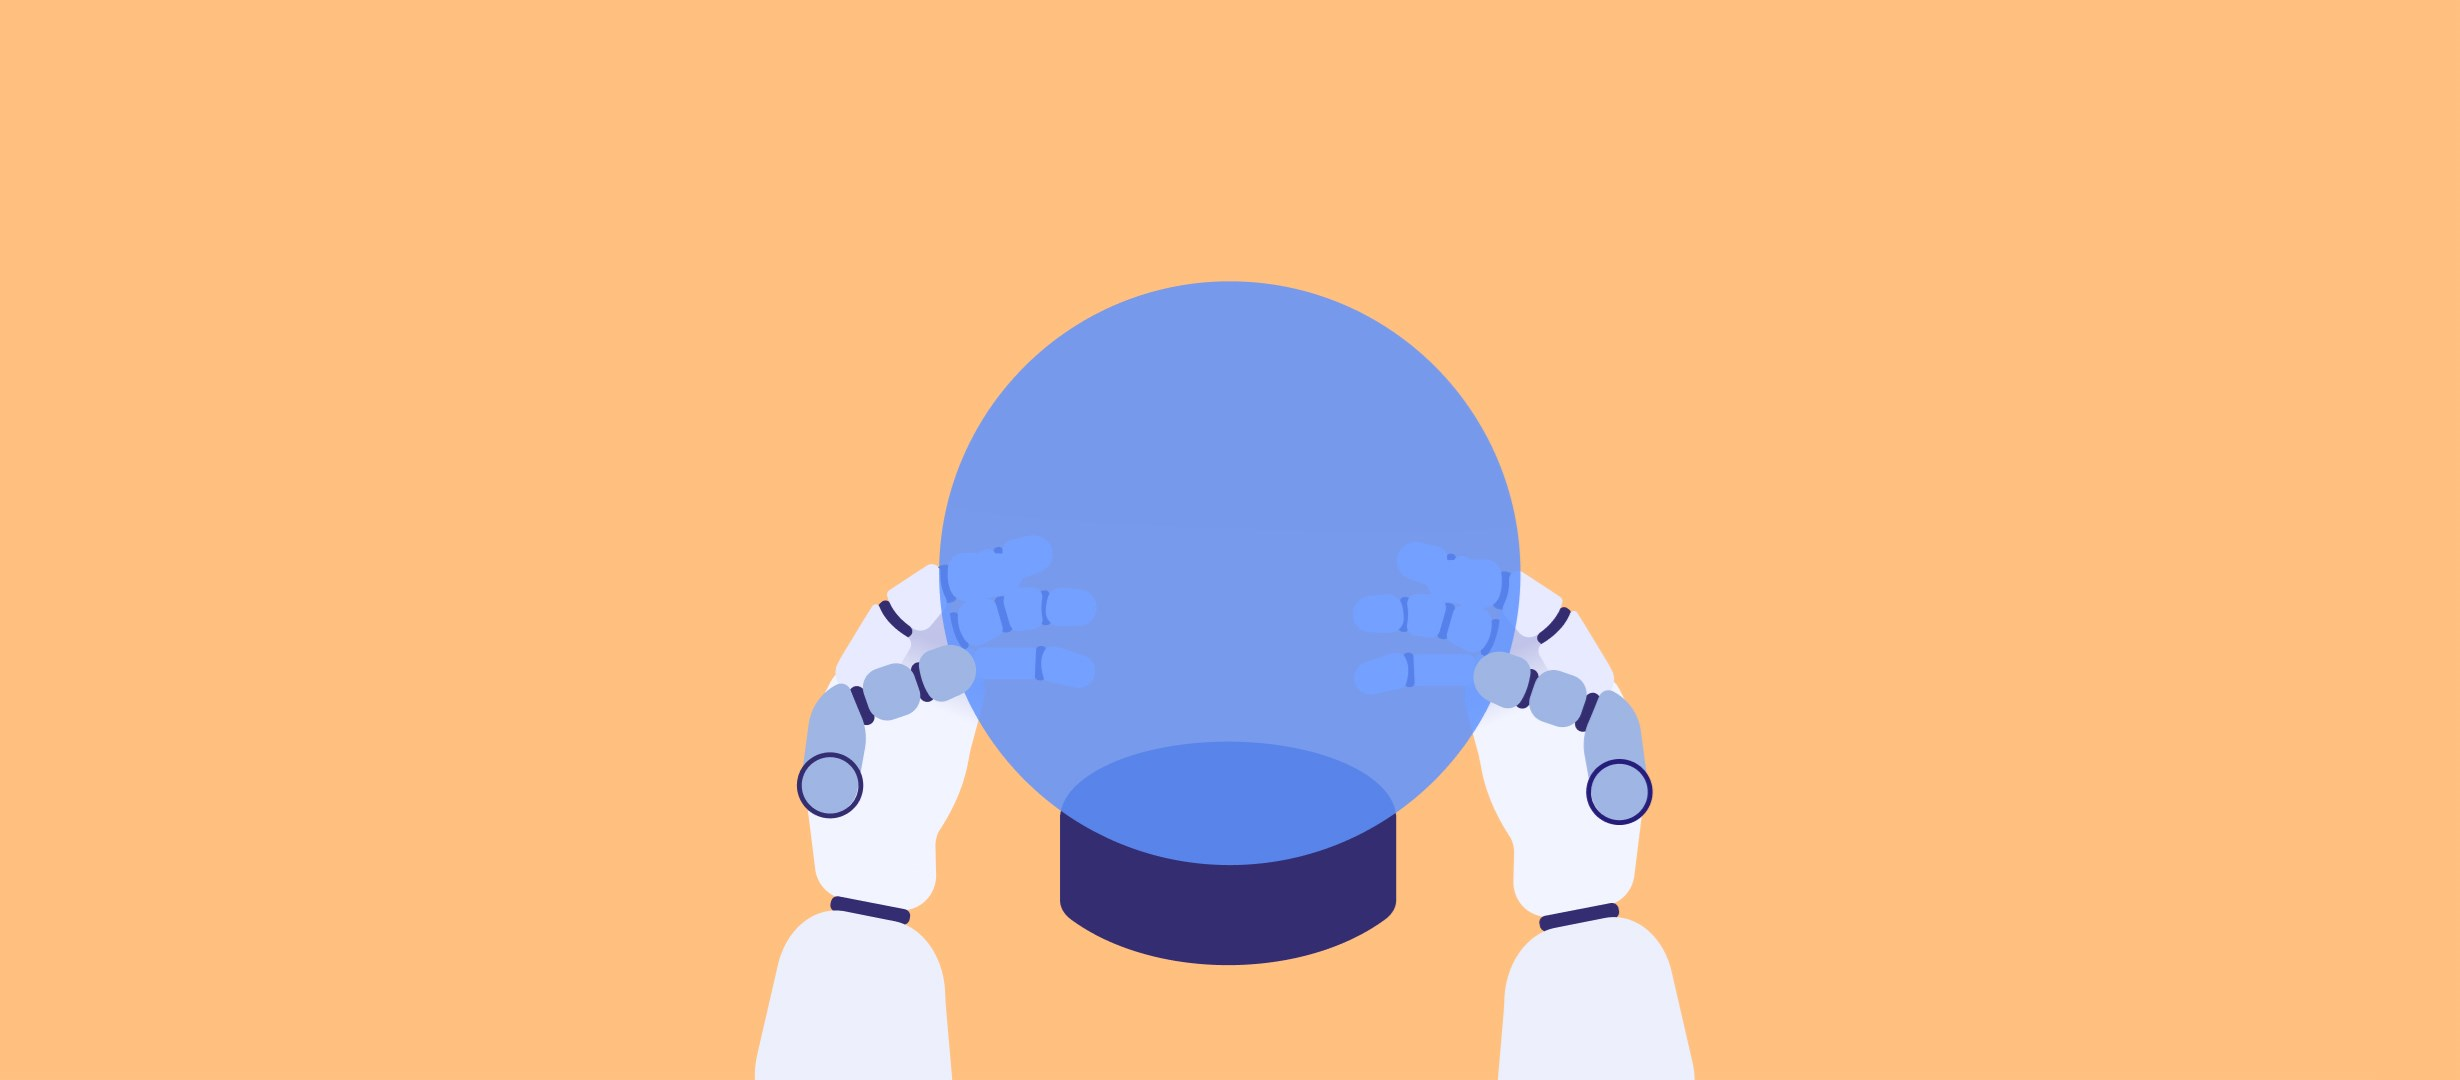 Robot holding a crystal ball